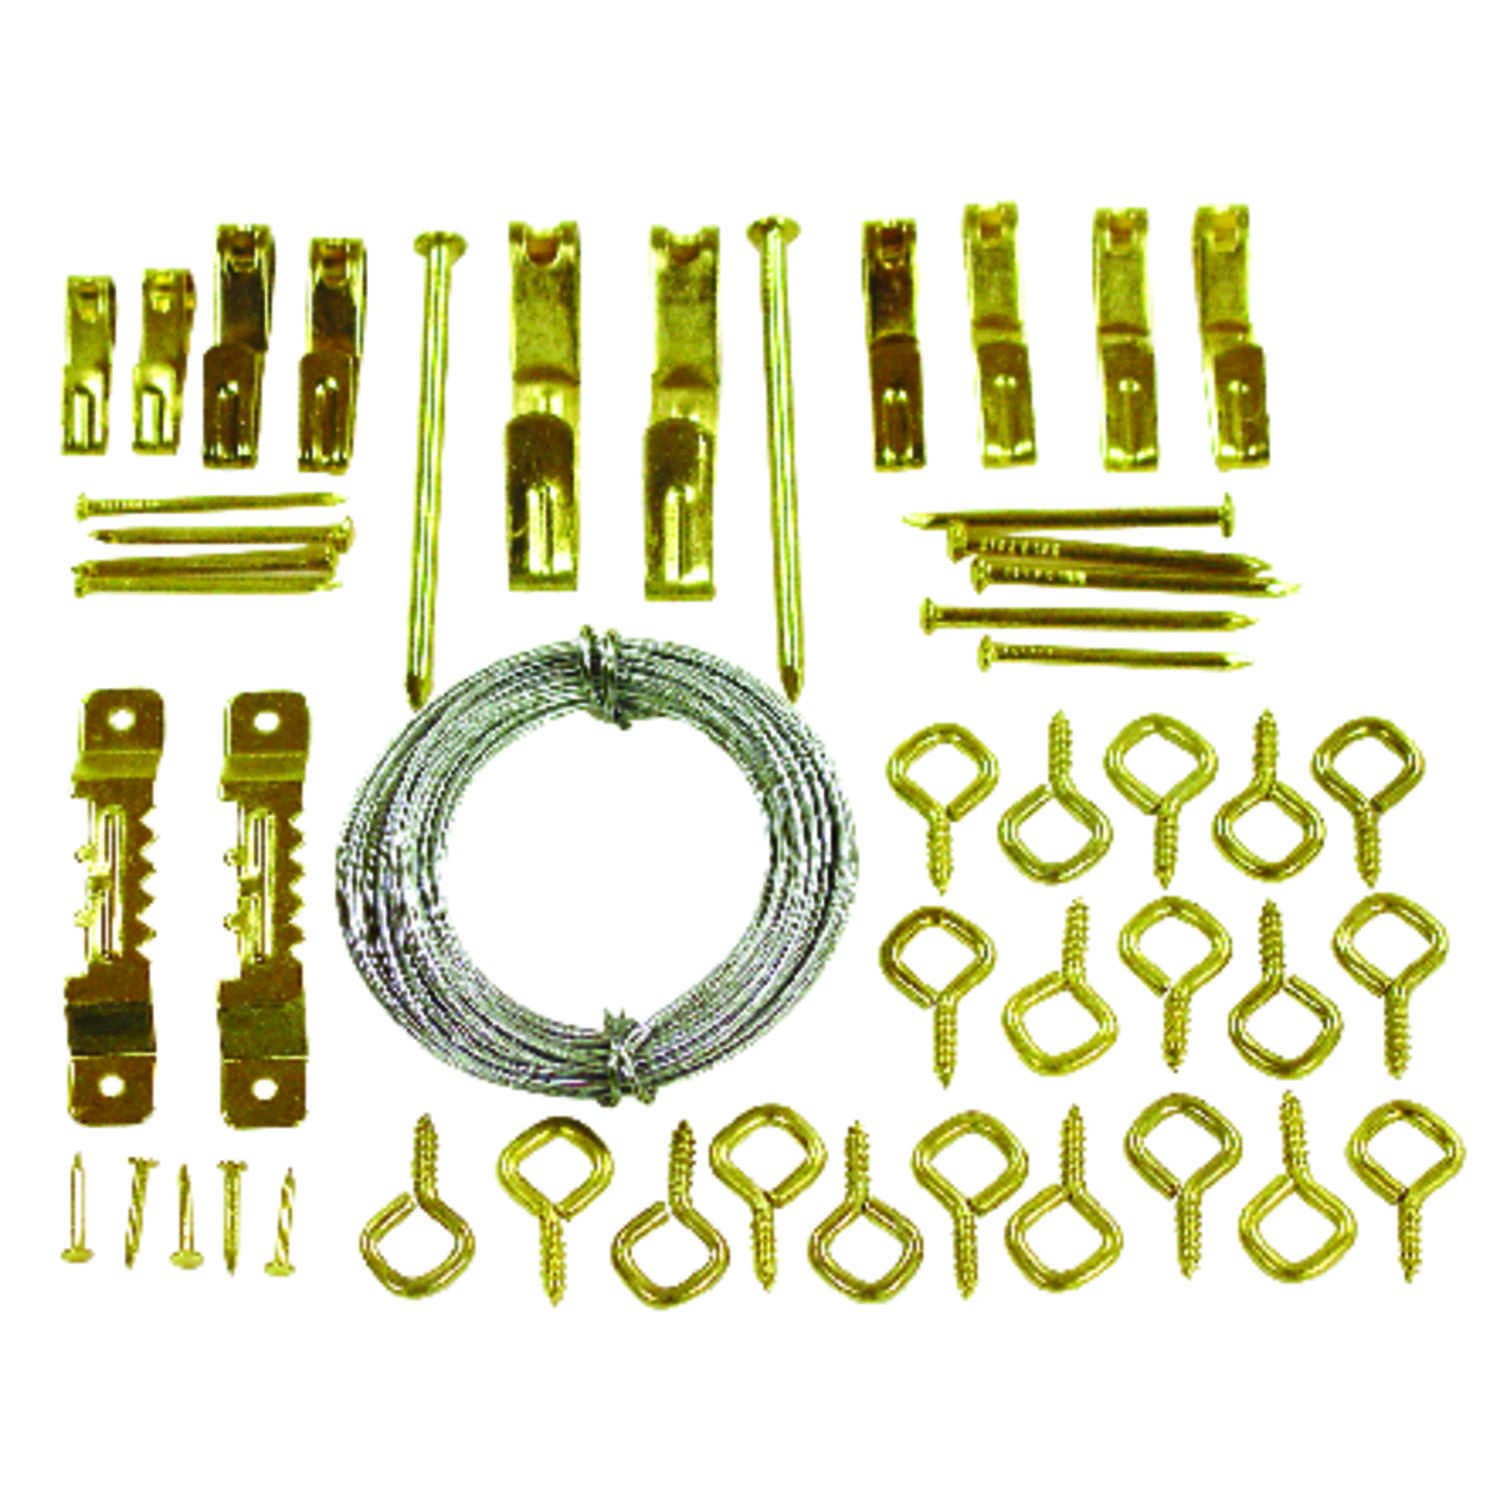 OOK  OOK  Steel  Picture Hook Kit  0 lb. 50 pk Conventional